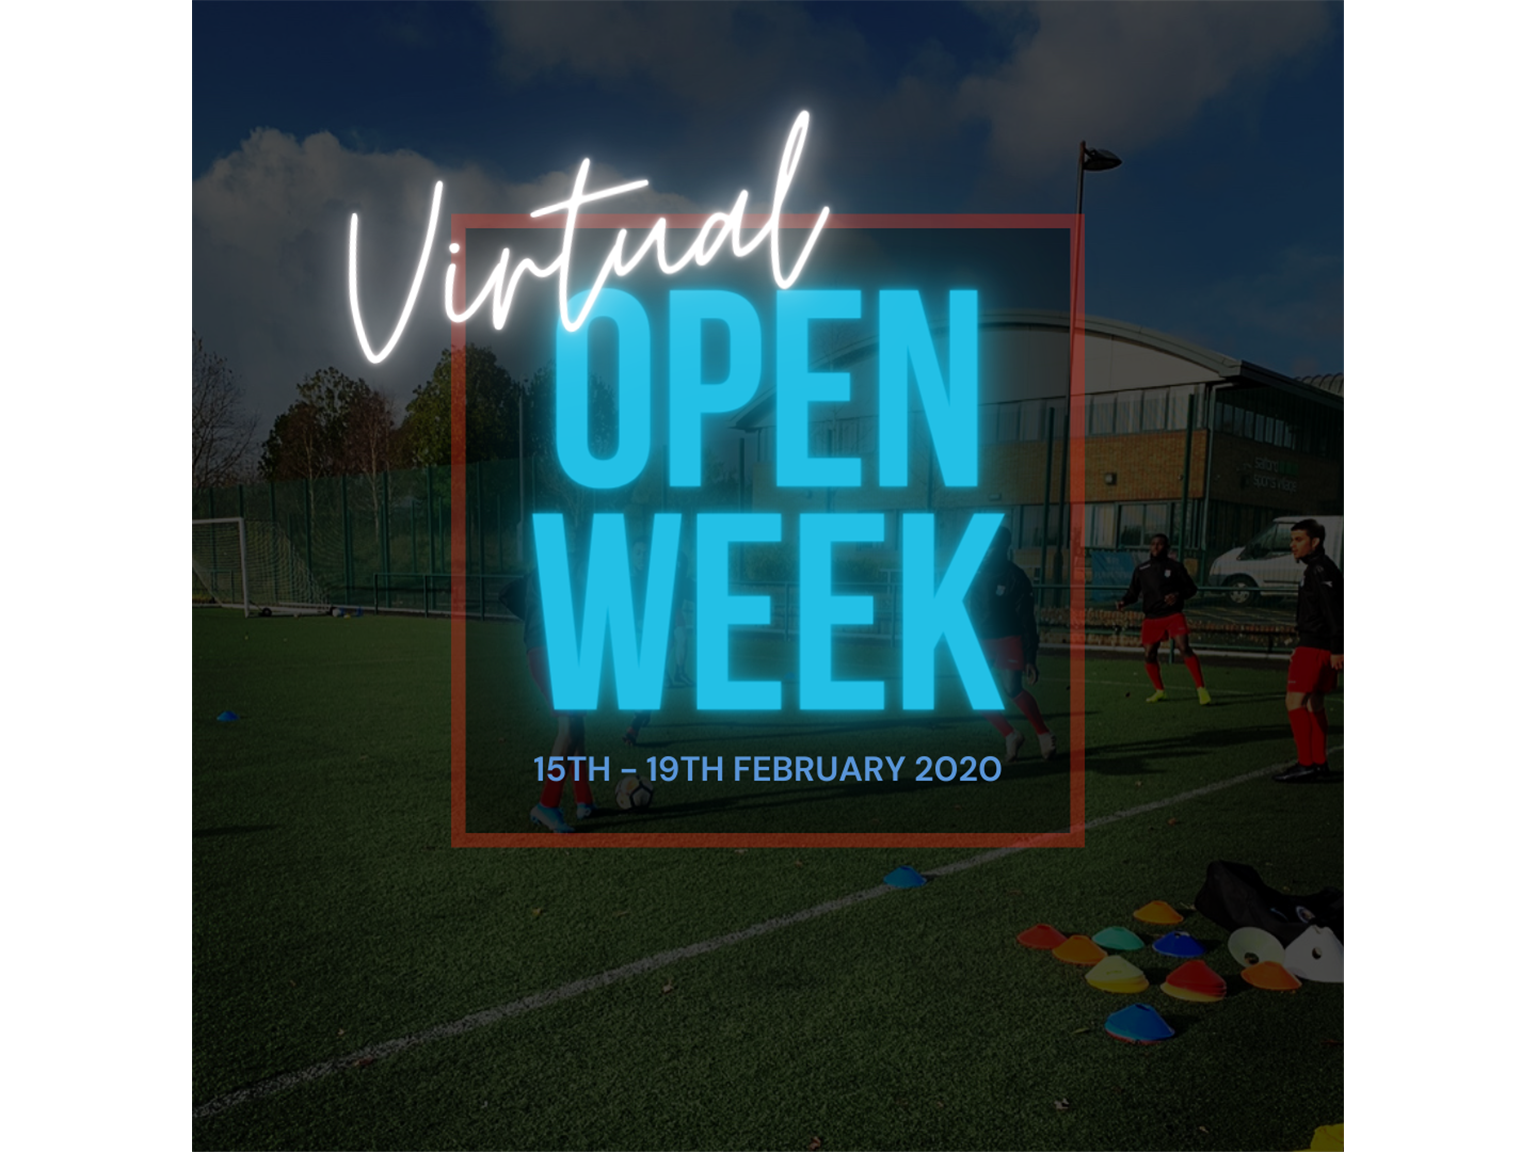 Virtual Open Week